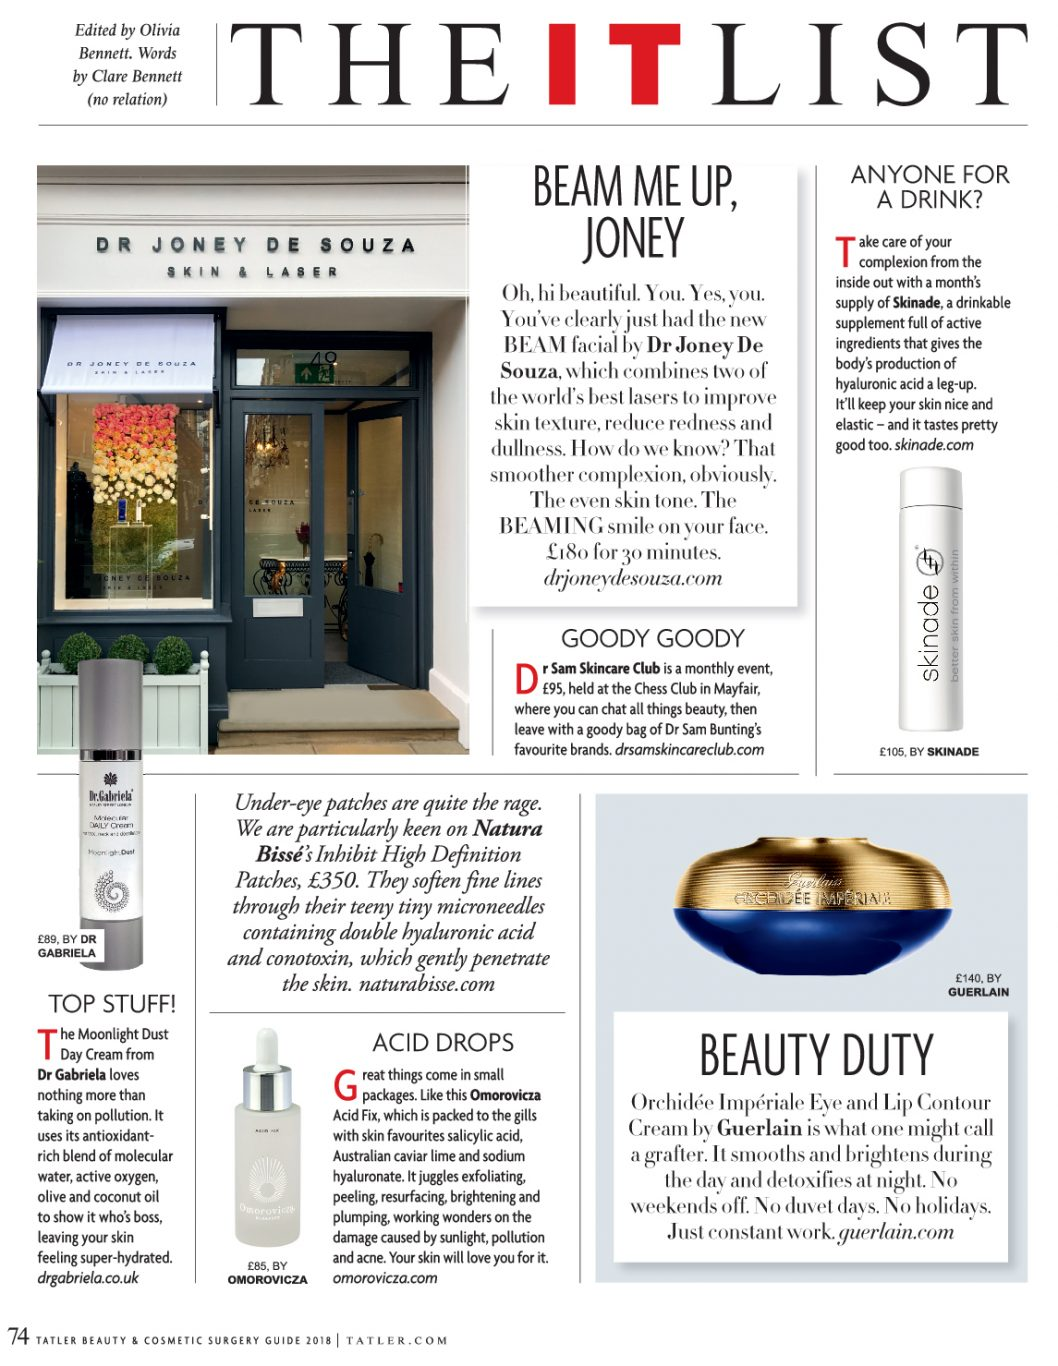 Moonlight Dust Daily Cream In Tatler2